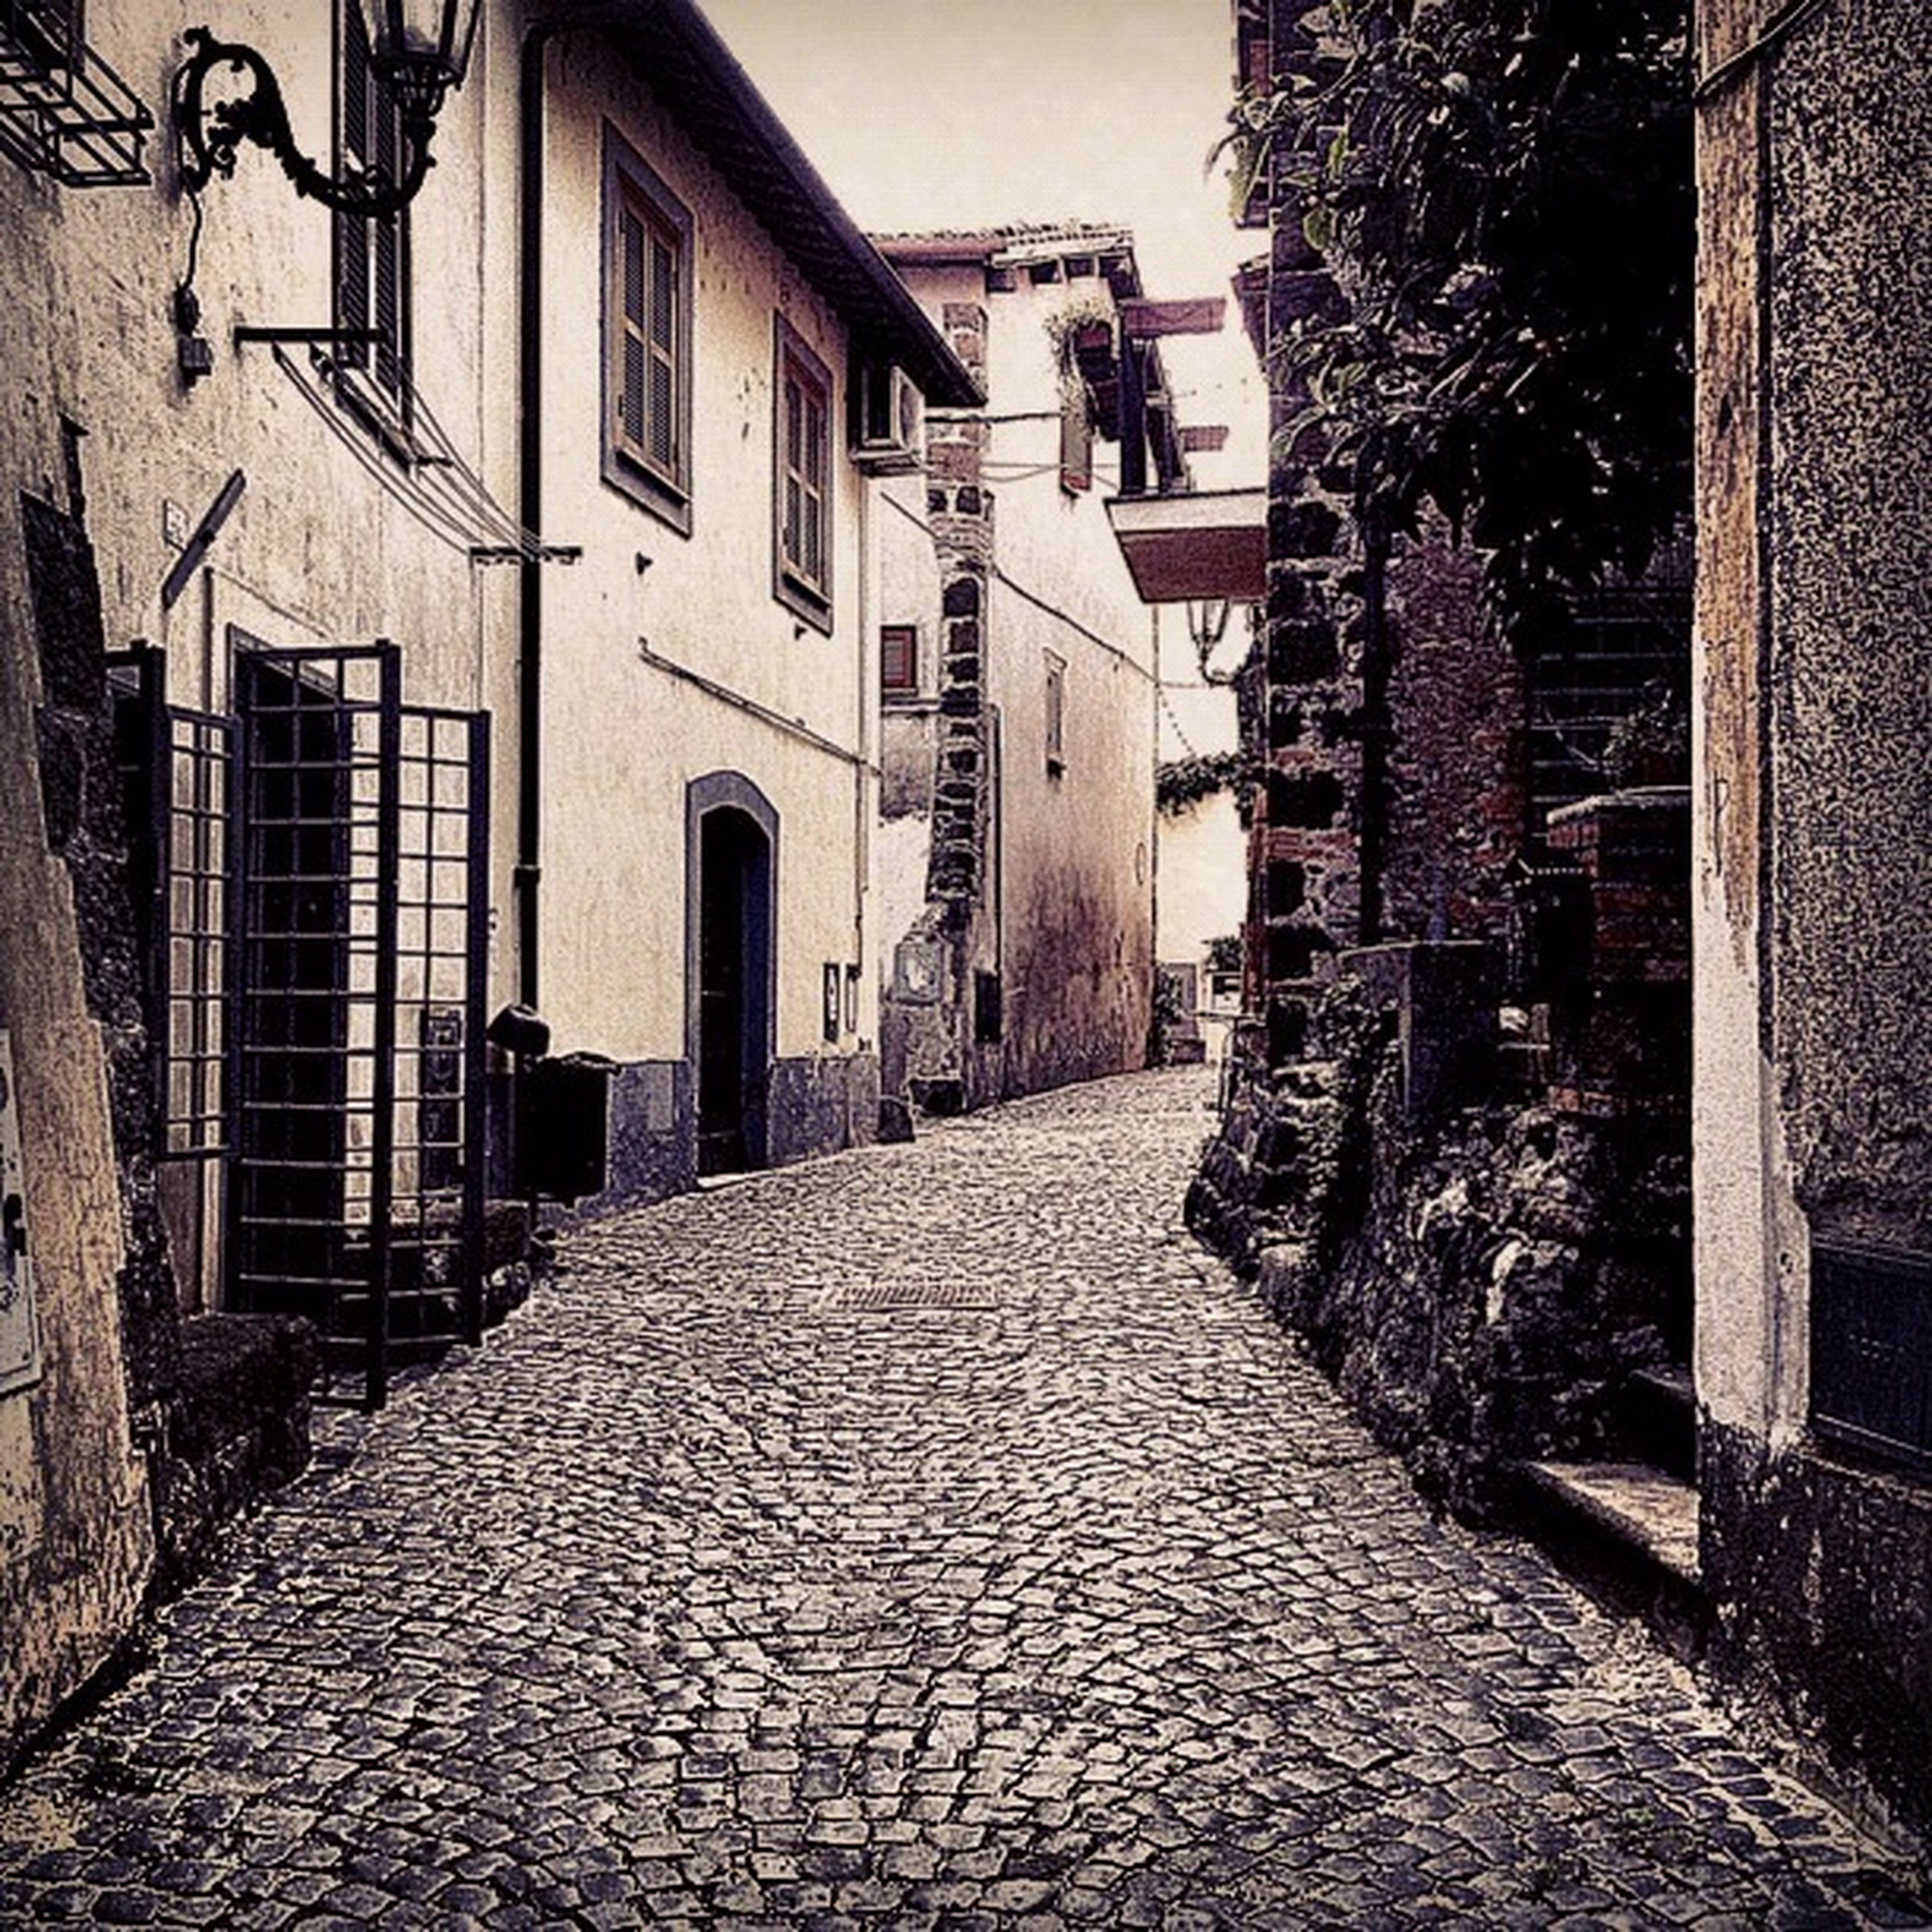 architecture, building exterior, built structure, the way forward, alley, cobblestone, diminishing perspective, street, residential building, narrow, residential structure, building, city, walkway, vanishing point, house, empty, footpath, pathway, long